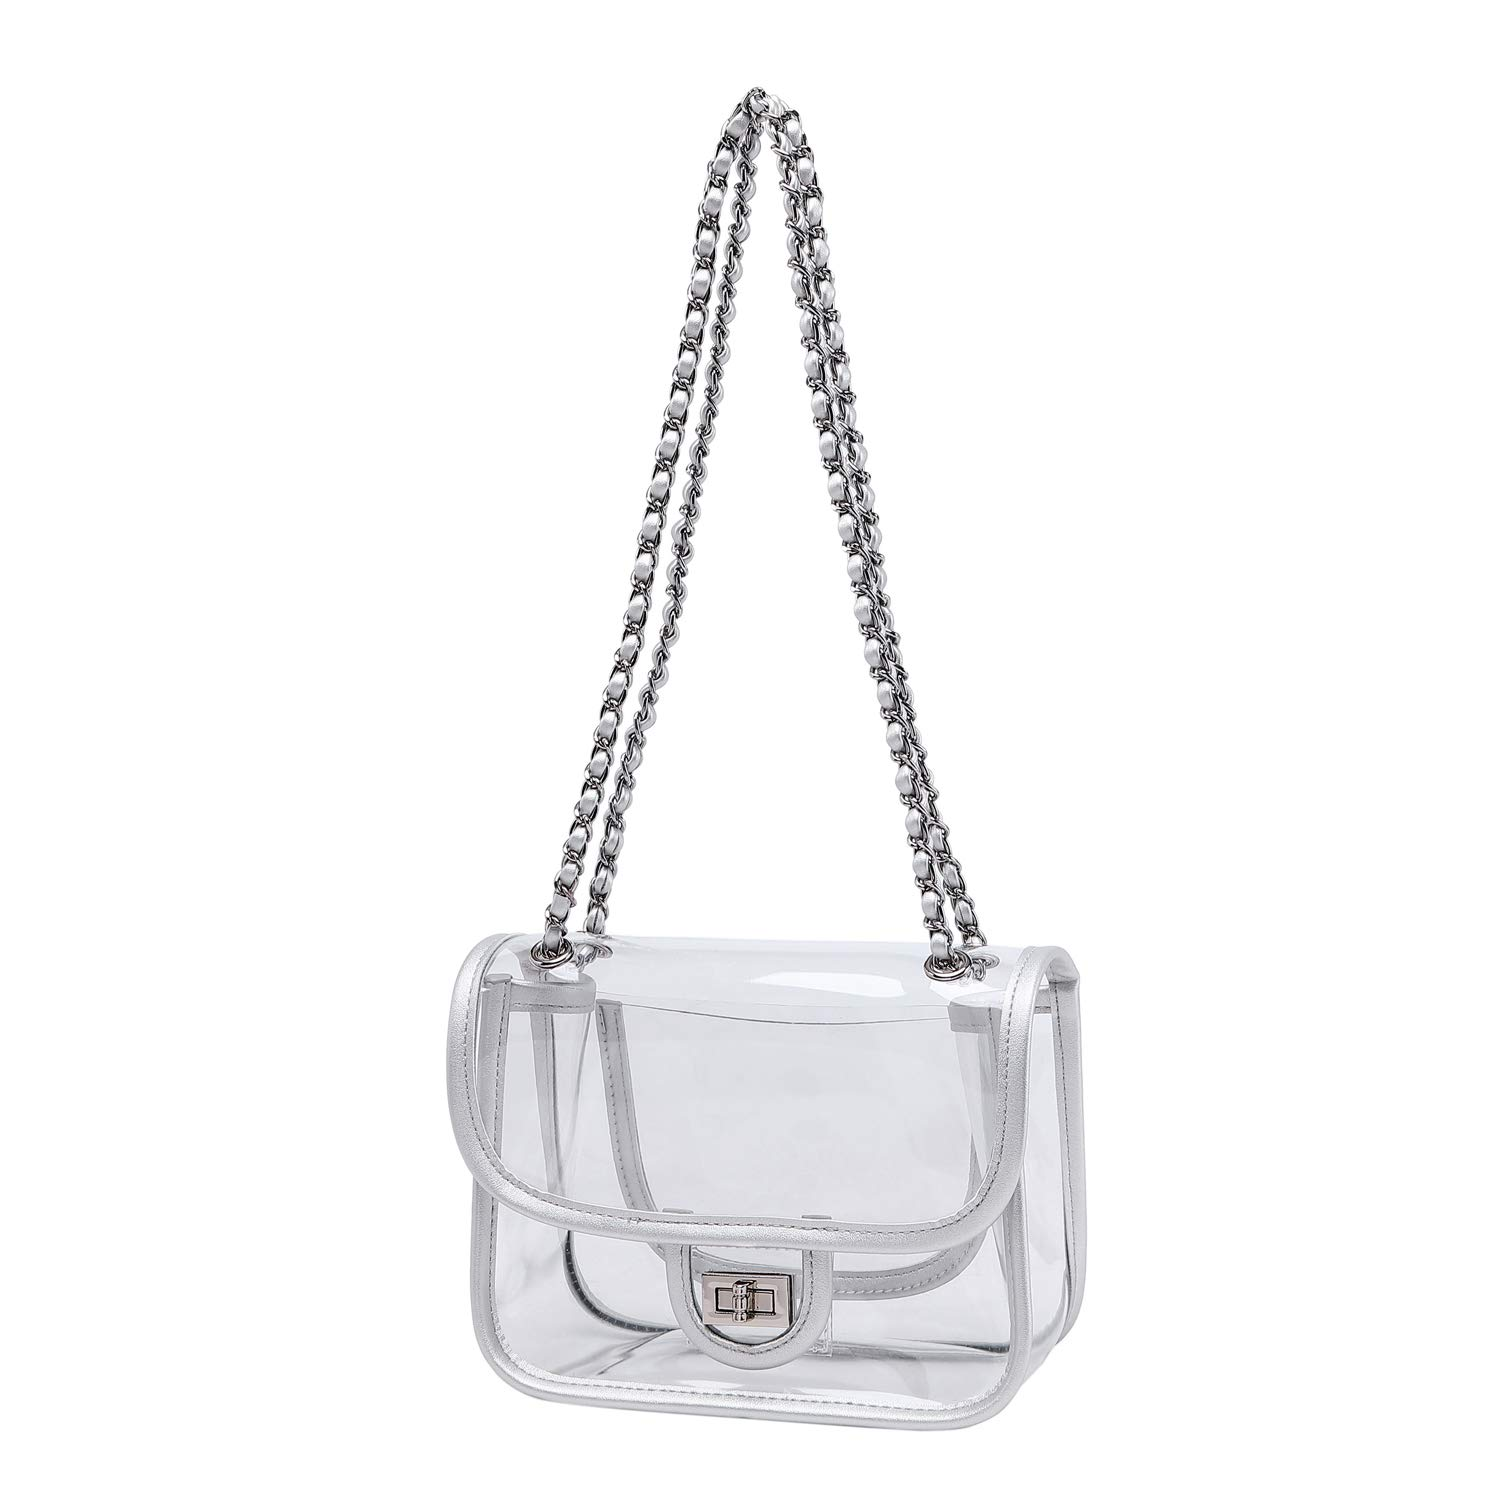 ویکالا · خرید  اصل اورجینال · خرید از آمازون · Lam Gallery Womens PVC Clear Purse Handbags for Working NFL Stadium Approved Bag Turn Lock Chain Shoulder Bag (Silver Hardware)(Small Silver) wekala · ویکالا